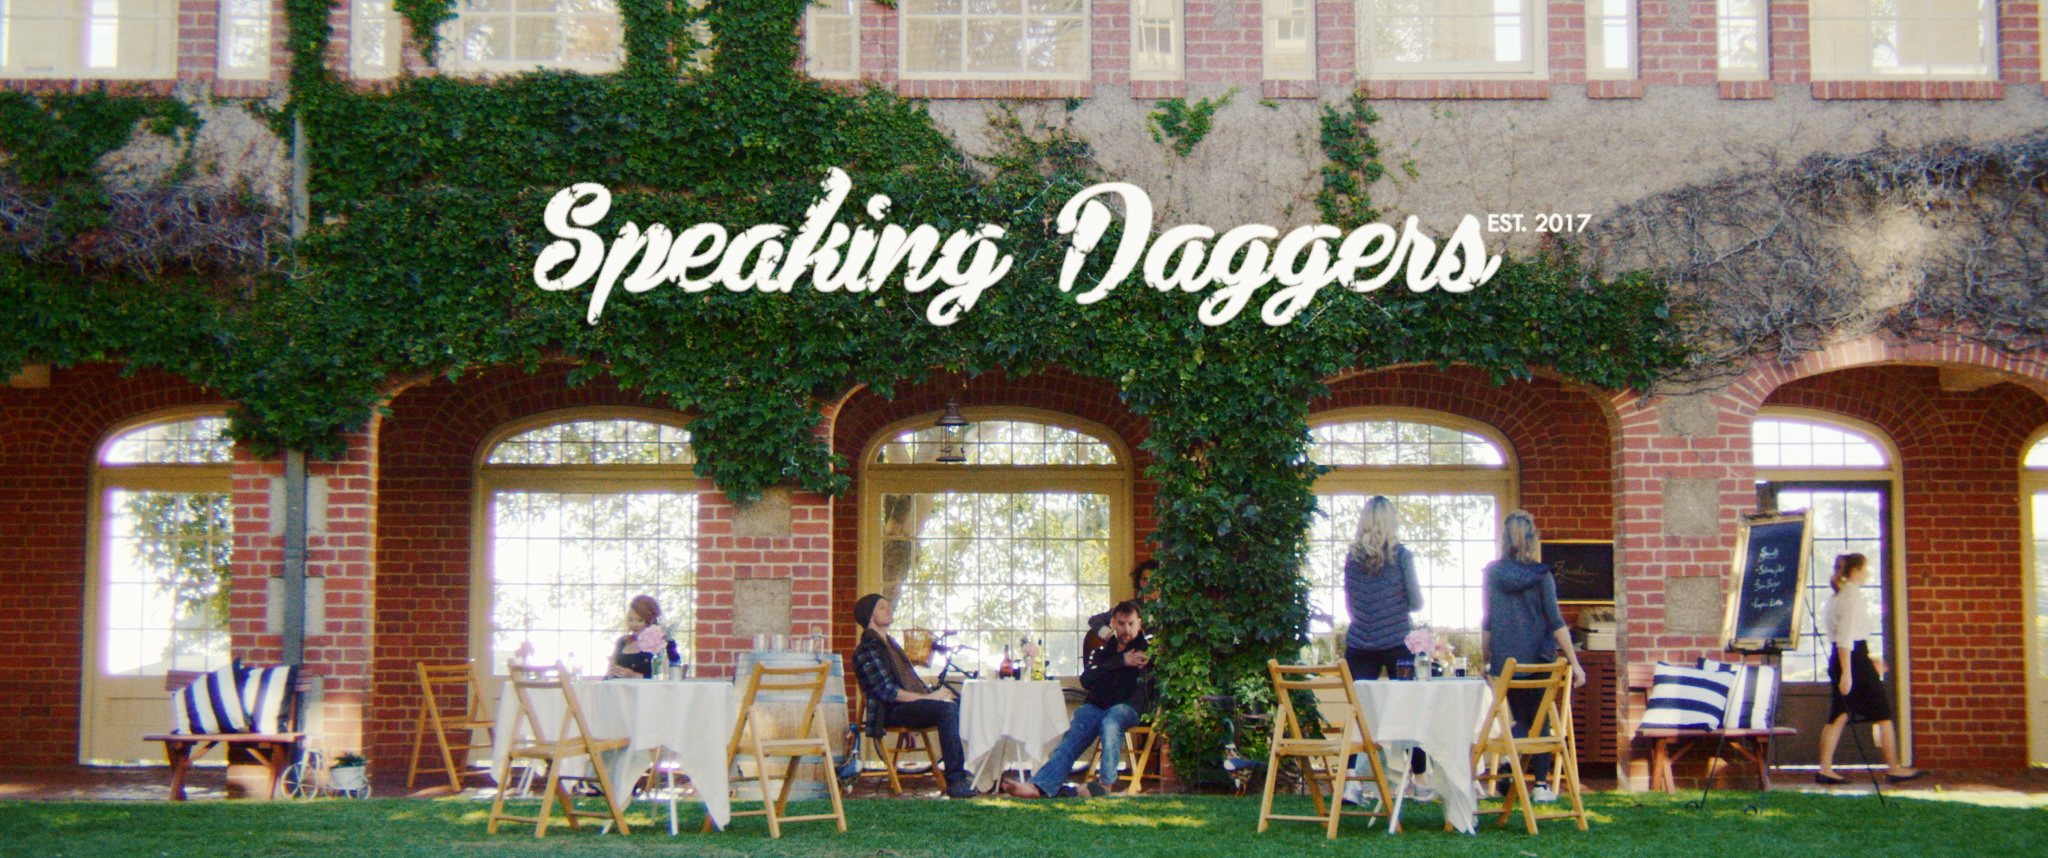 Speaking Daggers Opening Shot